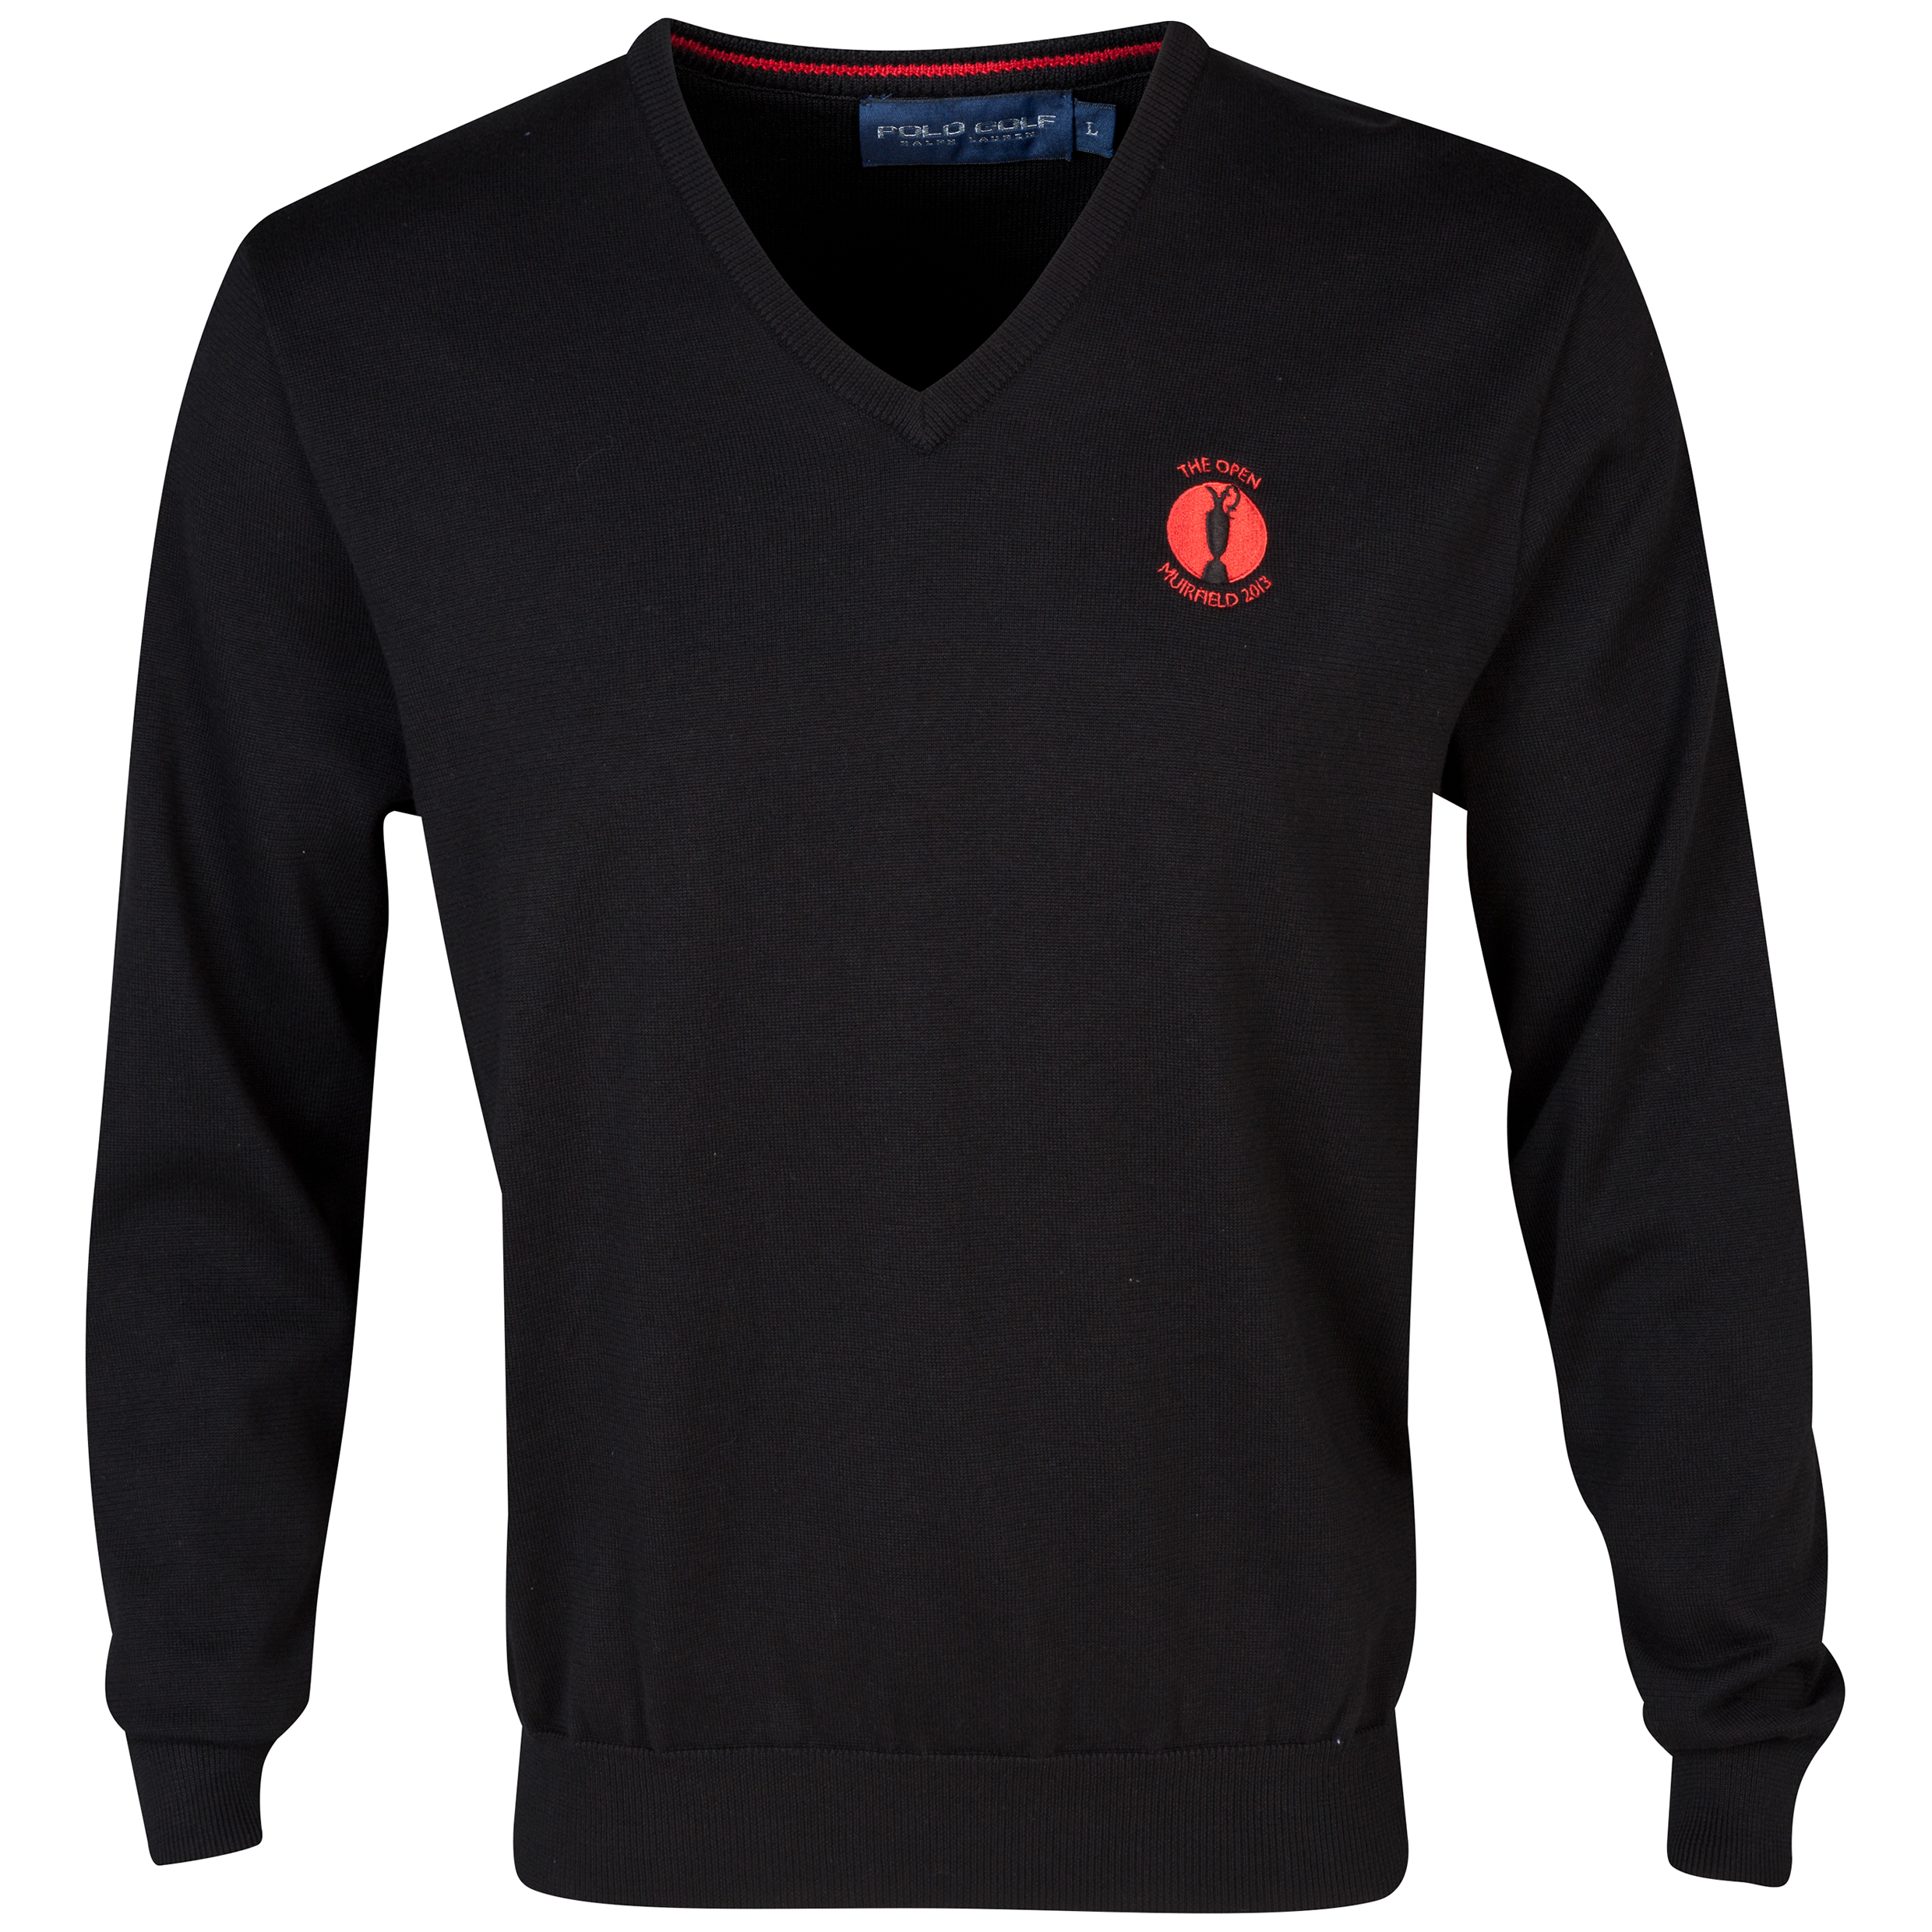 The Open Championship 2013 Muirfield Polo Ralph Lauren V-Neck Sweater Black